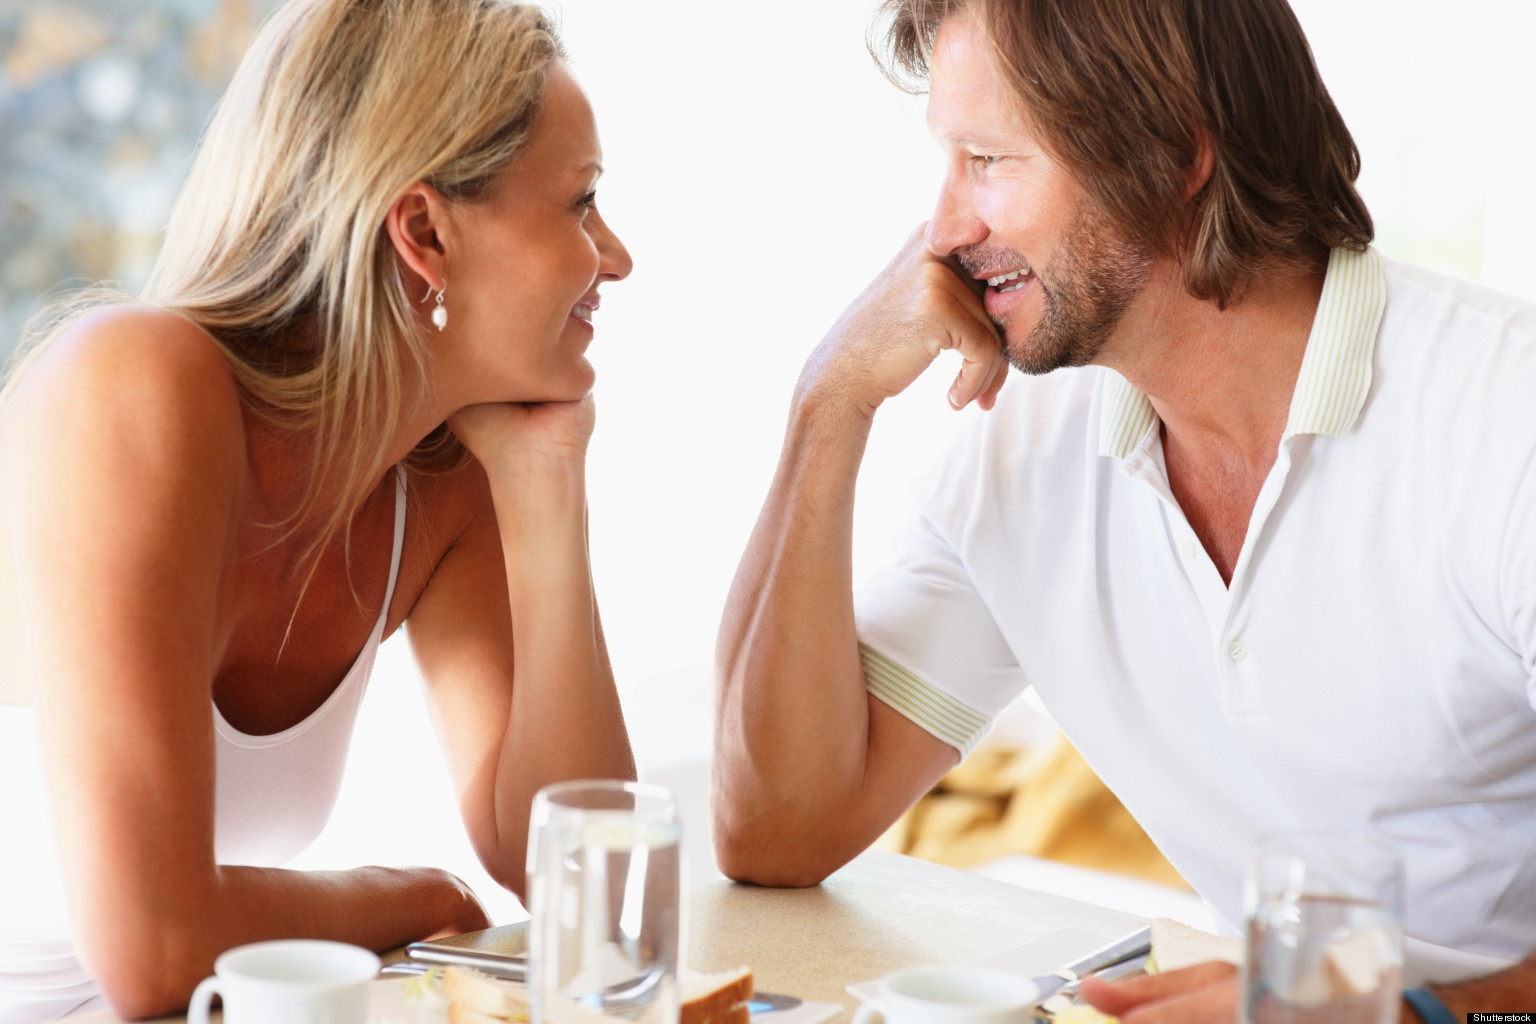 Dating After Divorce Advantages and Disadvantages of Sleepovers